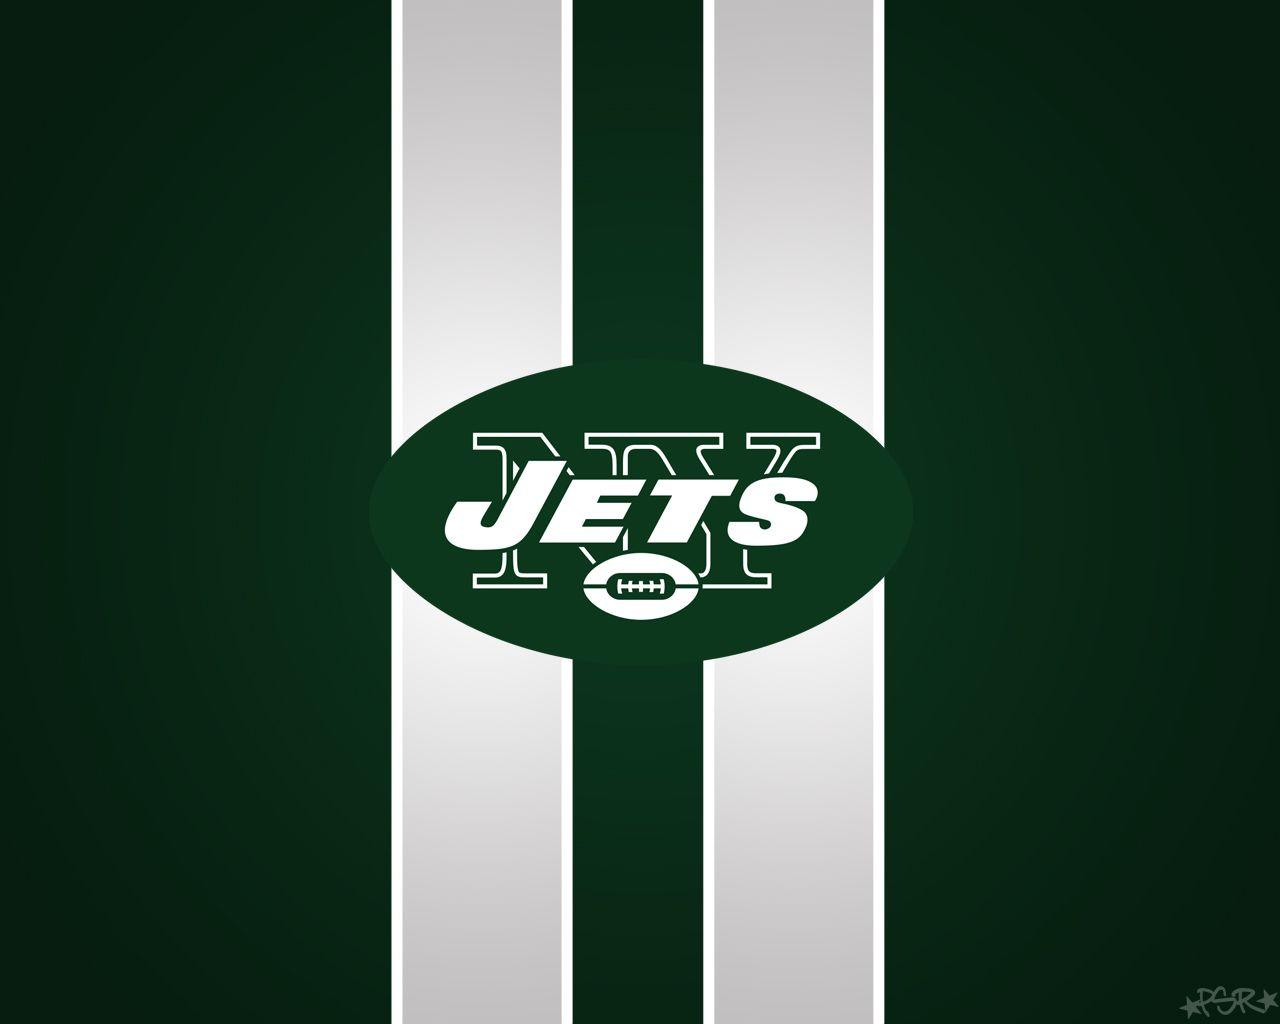 ny jets iphone wallpaper